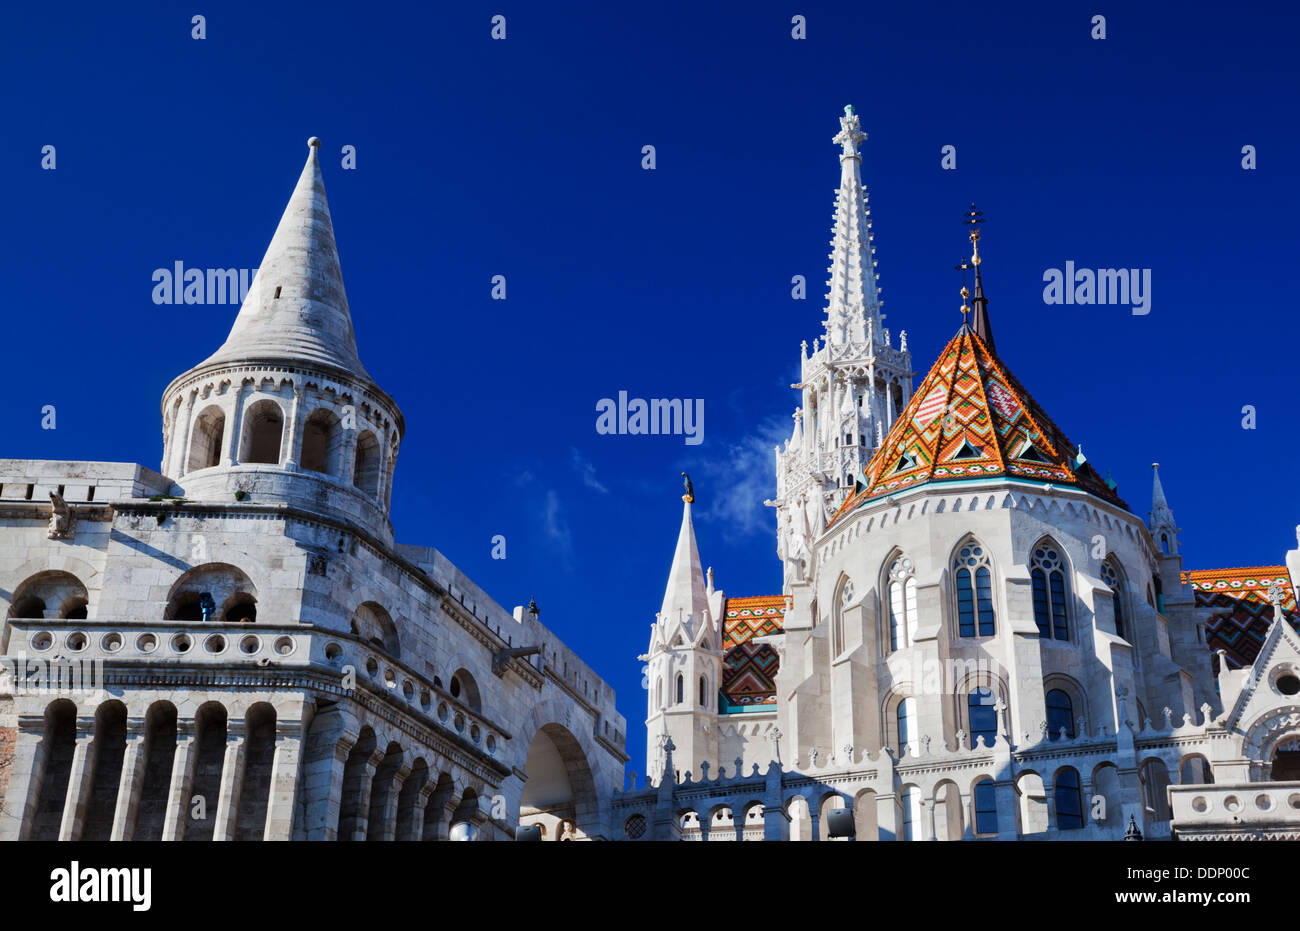 Fisherman's Bastion on the Buda Castle hill in Budapest, Hungary - Stock Image